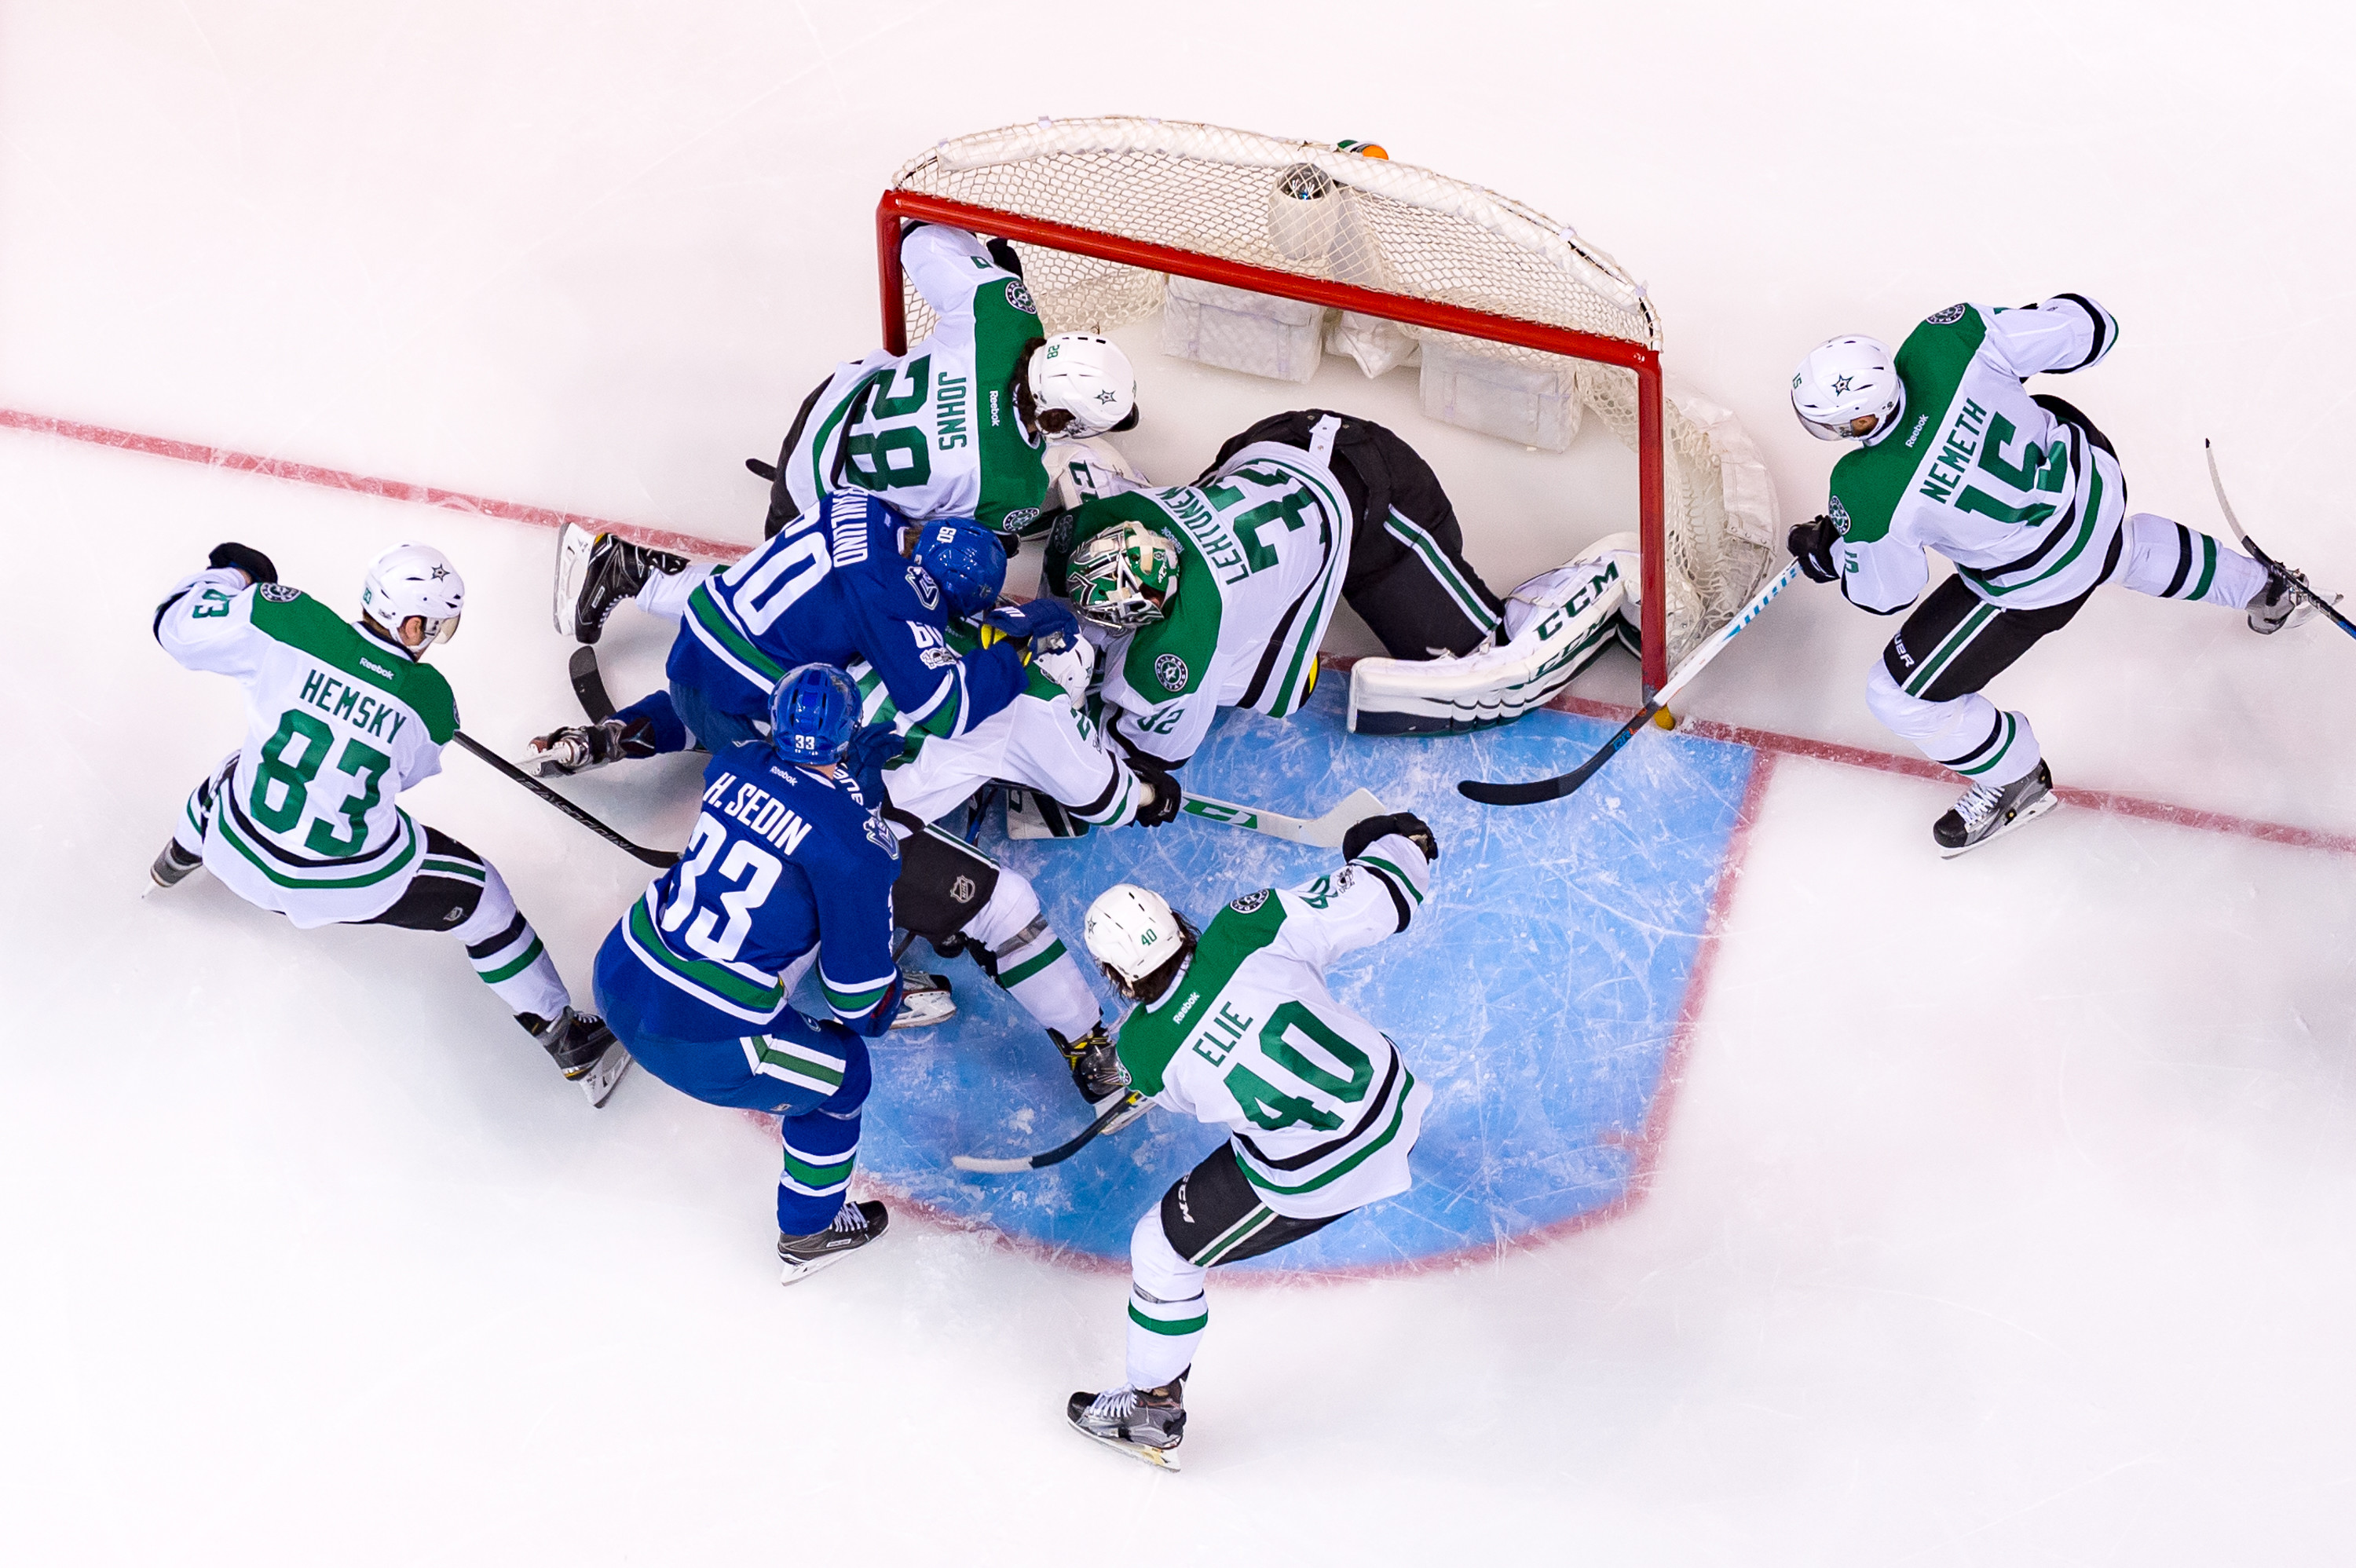 655372930-nhl-mar-16-stars-at-canucks.jpg